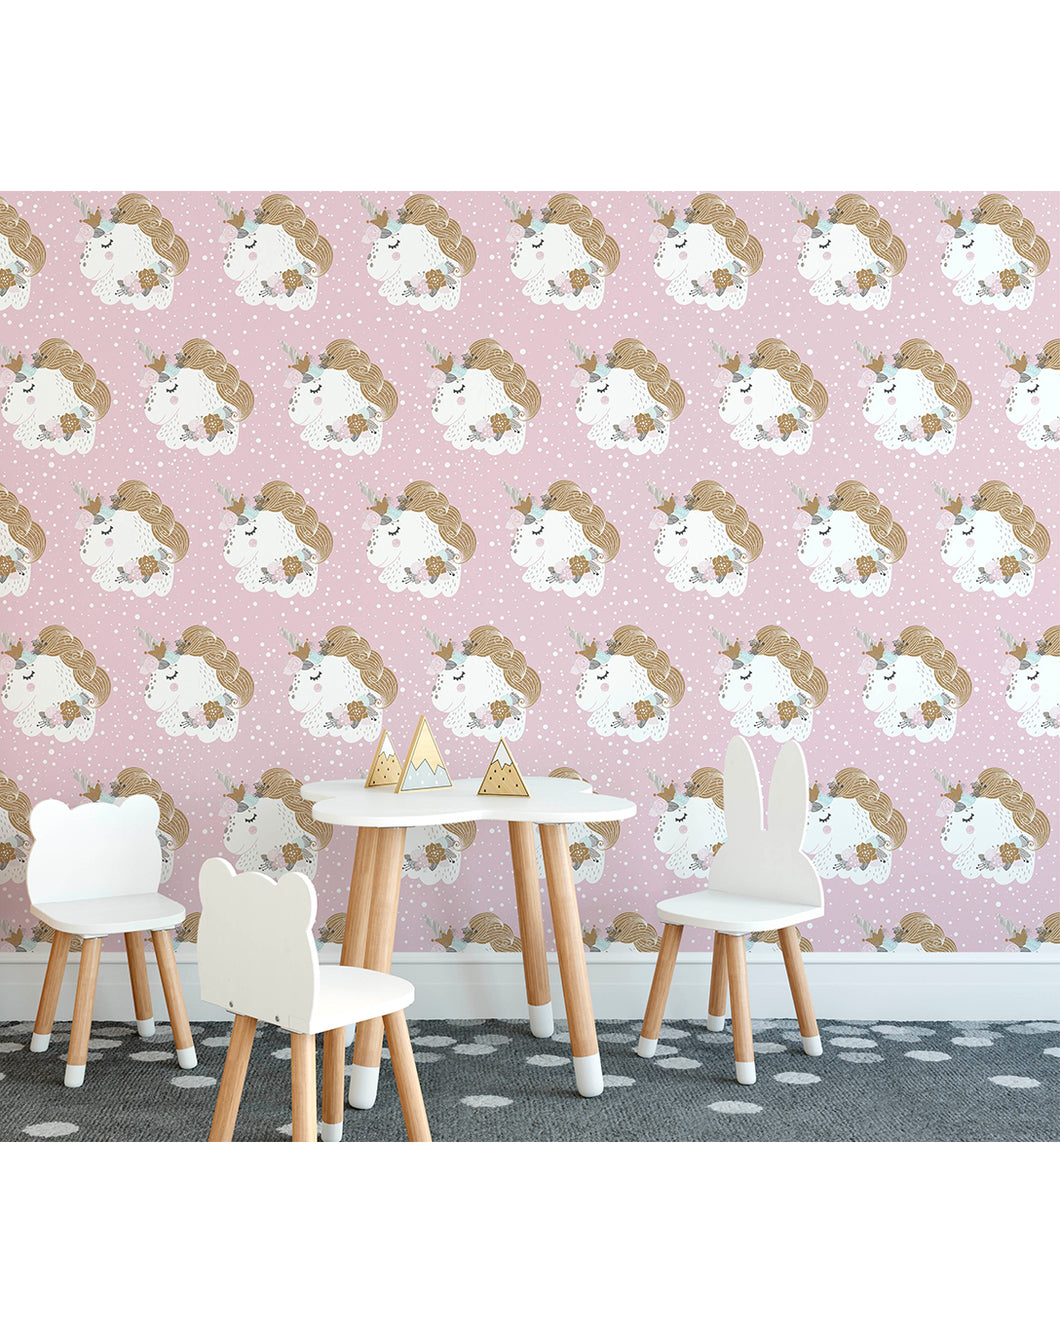 Self Adhesive Pink Unicorn Removable Wallpaer For Kids Room Nursery Costacover